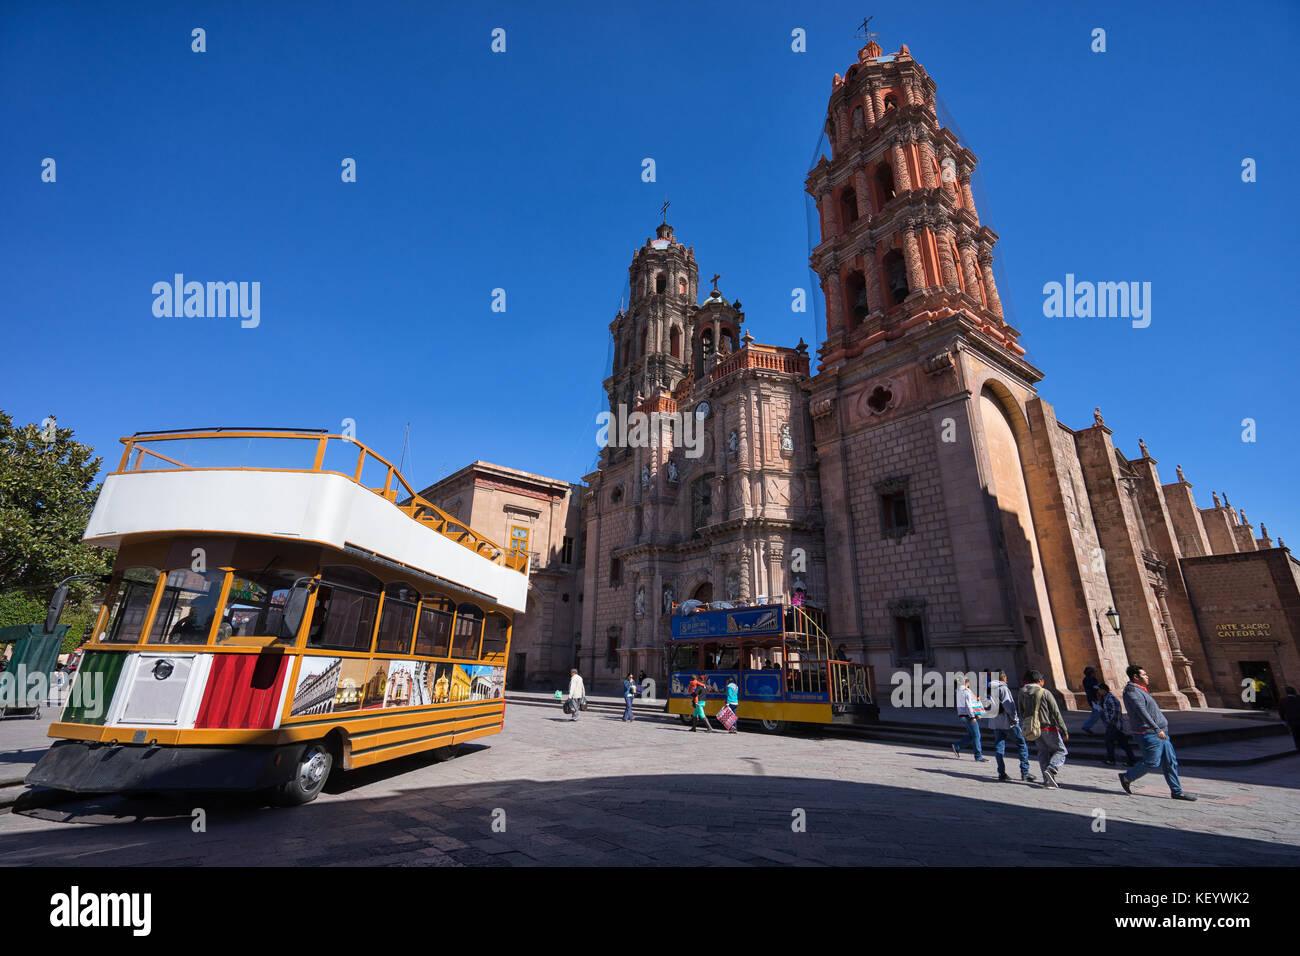 January 18, 2016 San Luis Potosi, Mexico: double deck tourist tour bus in the historic center of the colonial city - Stock Image